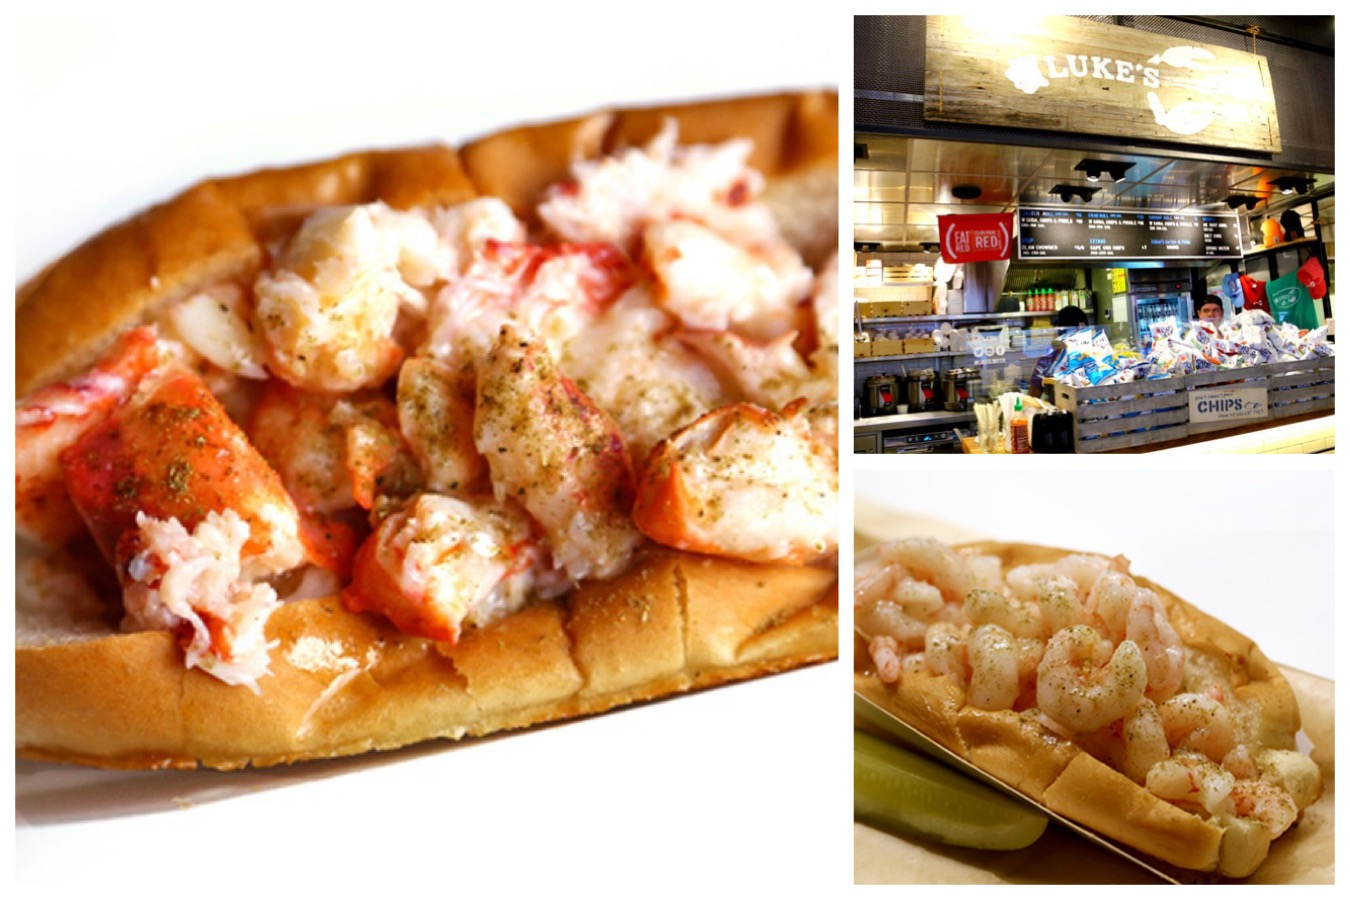 Luke's Lobster - Lobster Roll Paradise At New York City. Just Look At Those Chunks Of Lobster